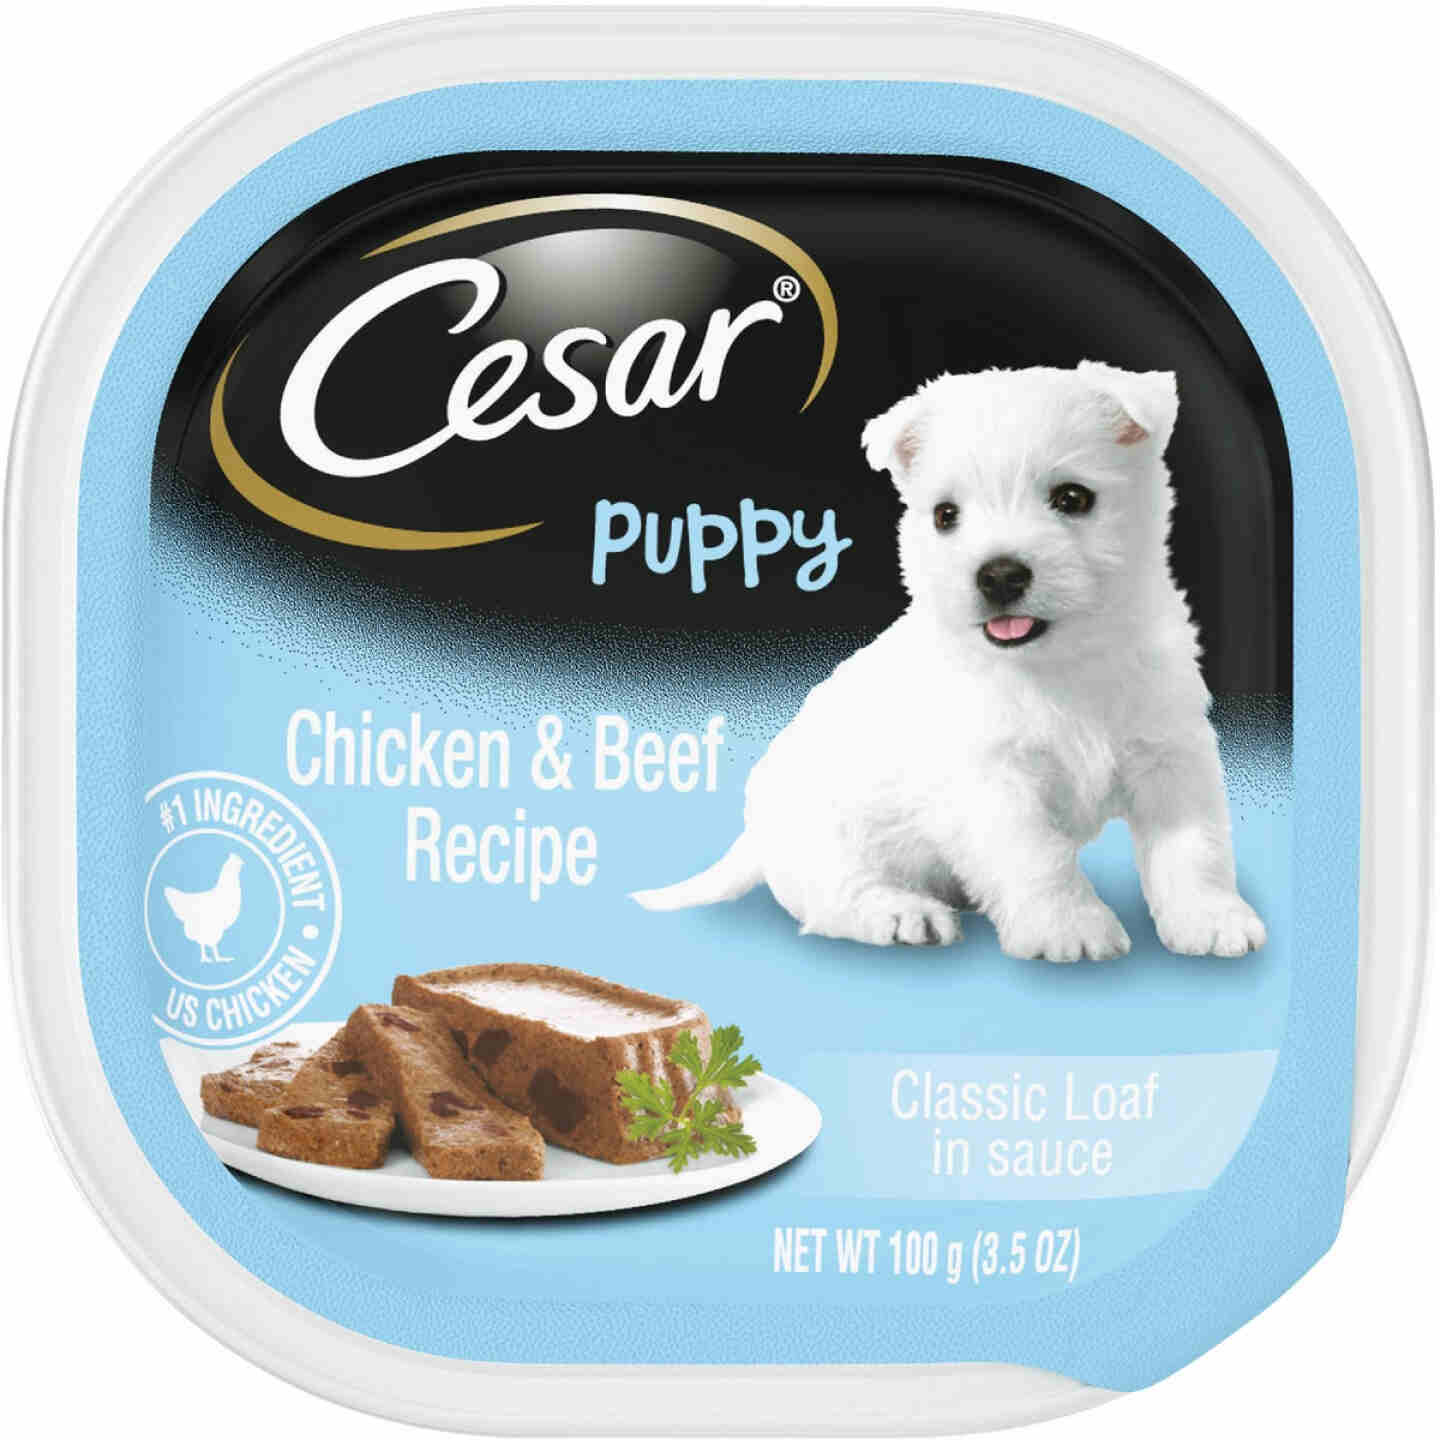 Cesar Classic Loaf Chicken & Beef Wet Puppy Food, 3.5 Oz. Image 1